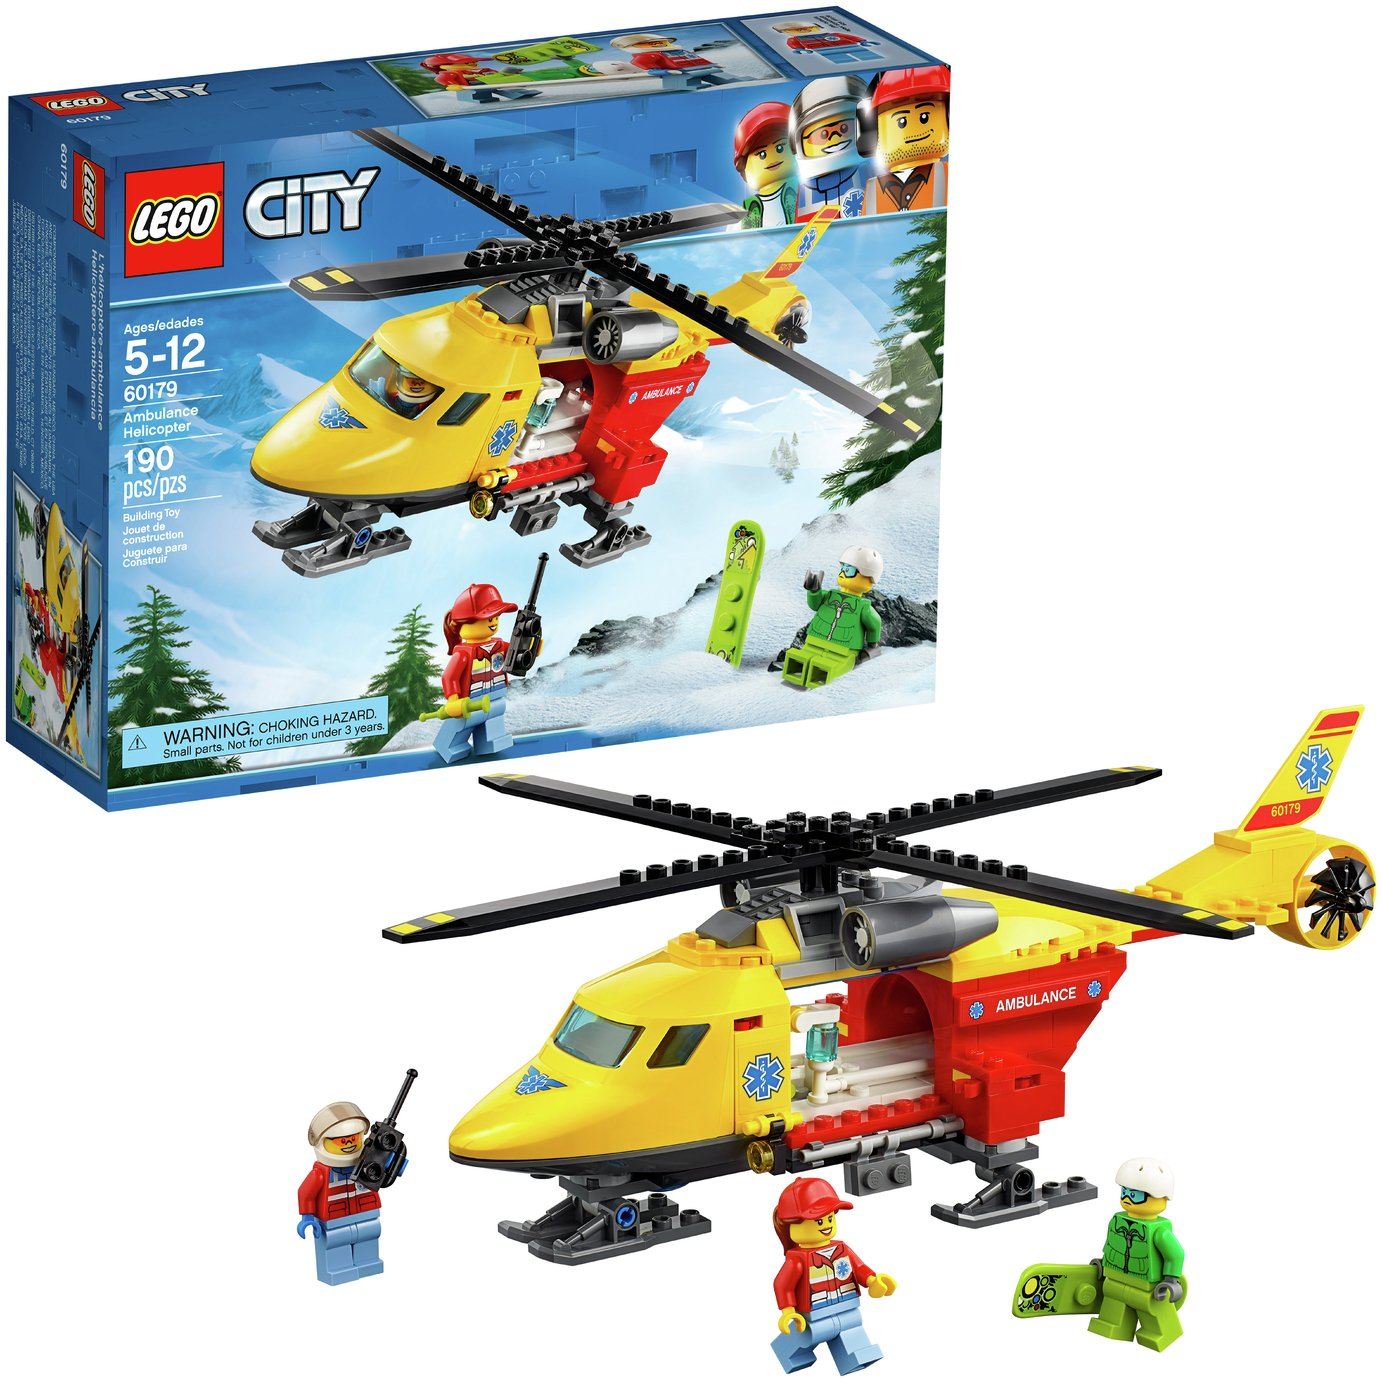 LEGO City Vehicles Ambulance Toy Helicopter Playset - 60179